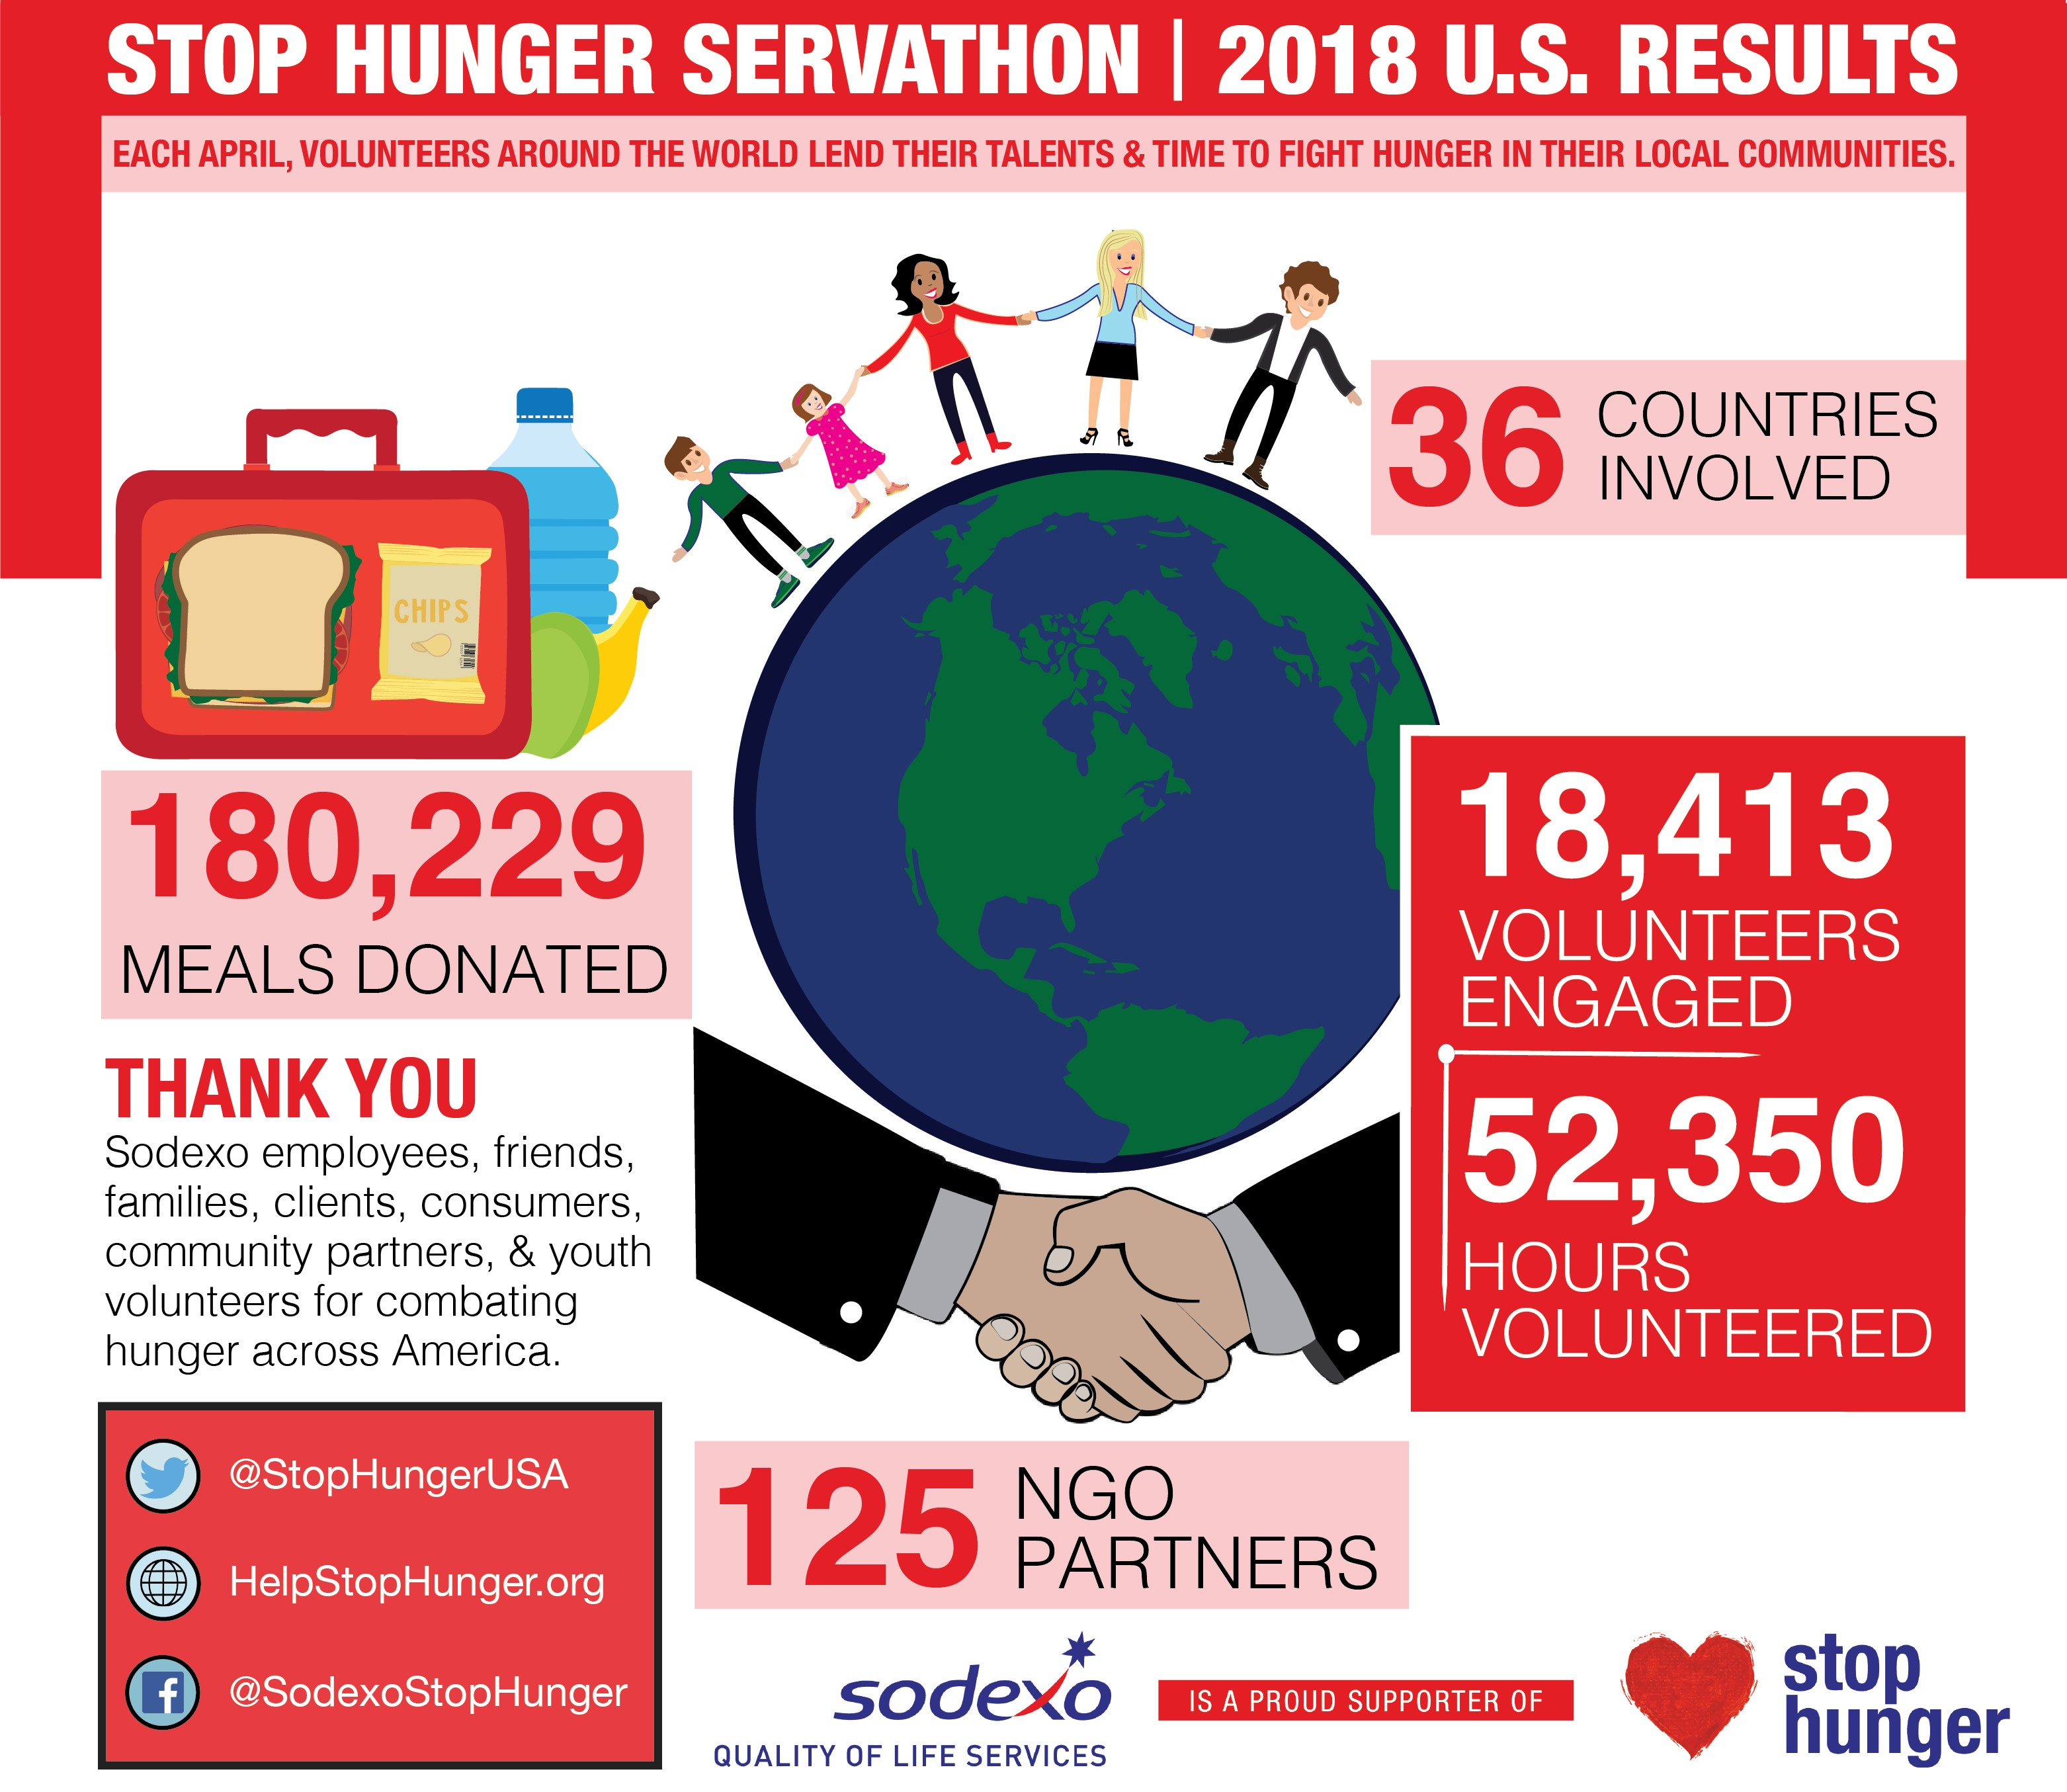 FINAL_2018 Servathon Results Infographic-01.jpg